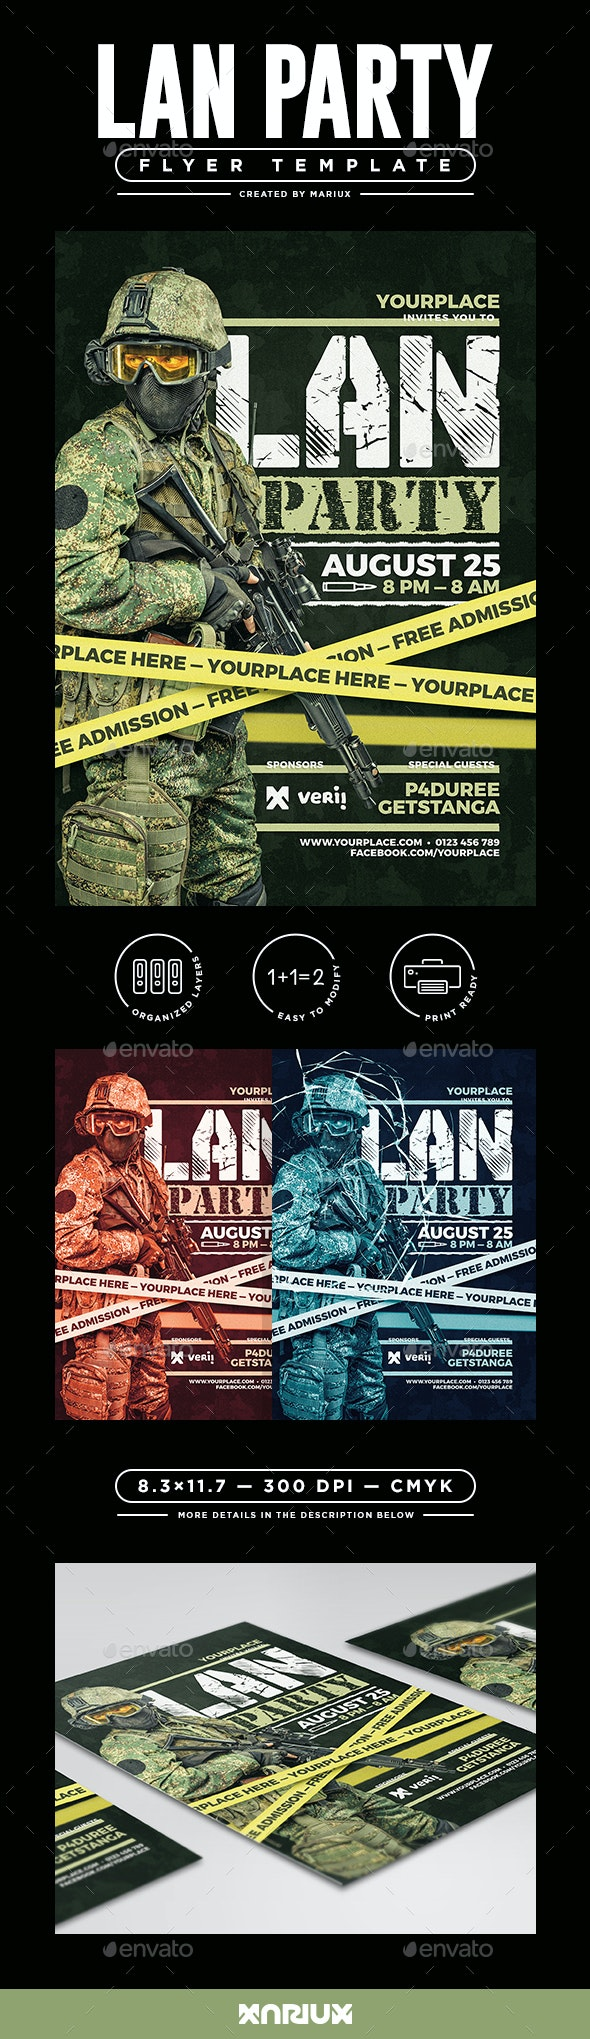 Lan Party Flyer/Poster - Events Flyers